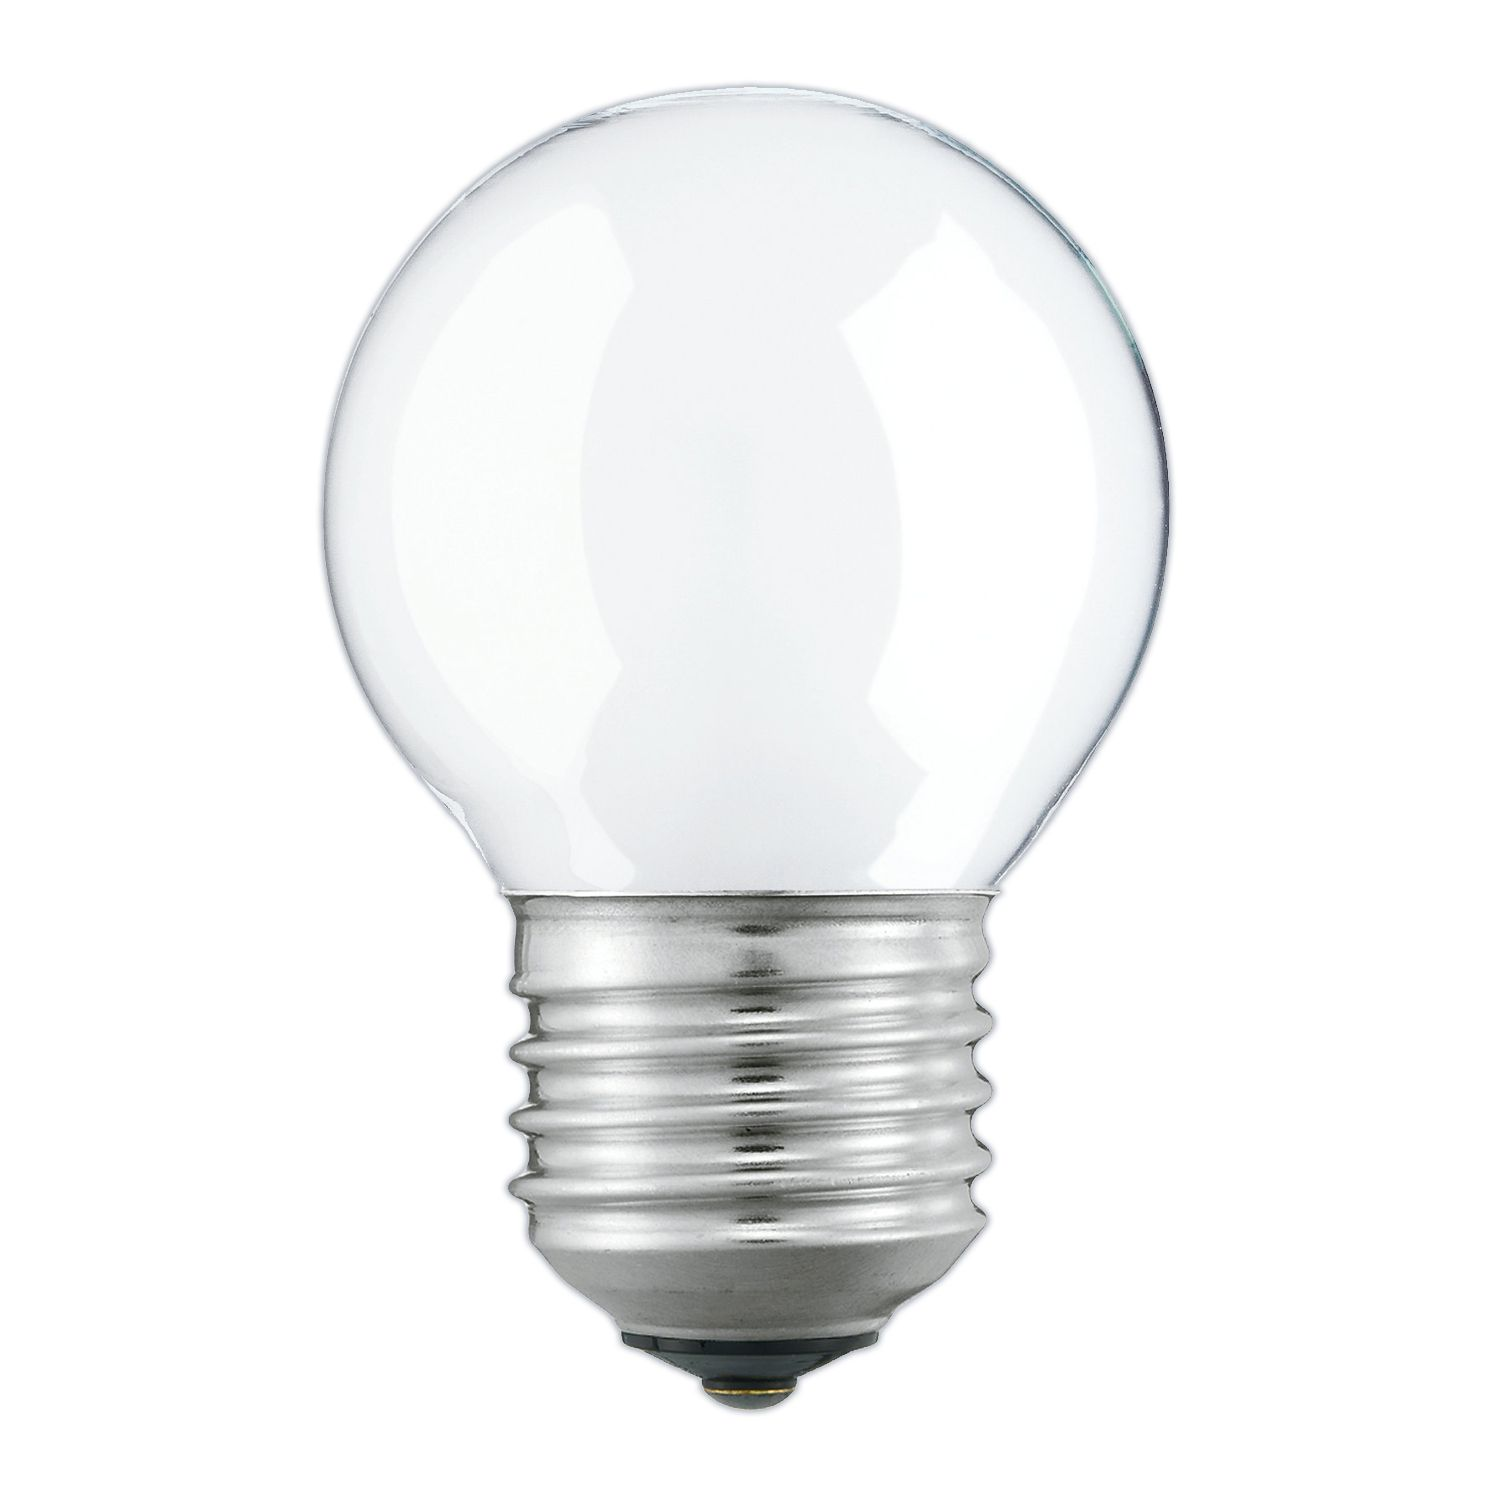 Standard Incandescent Bulb Round Frosted P45 E27 60W 230V